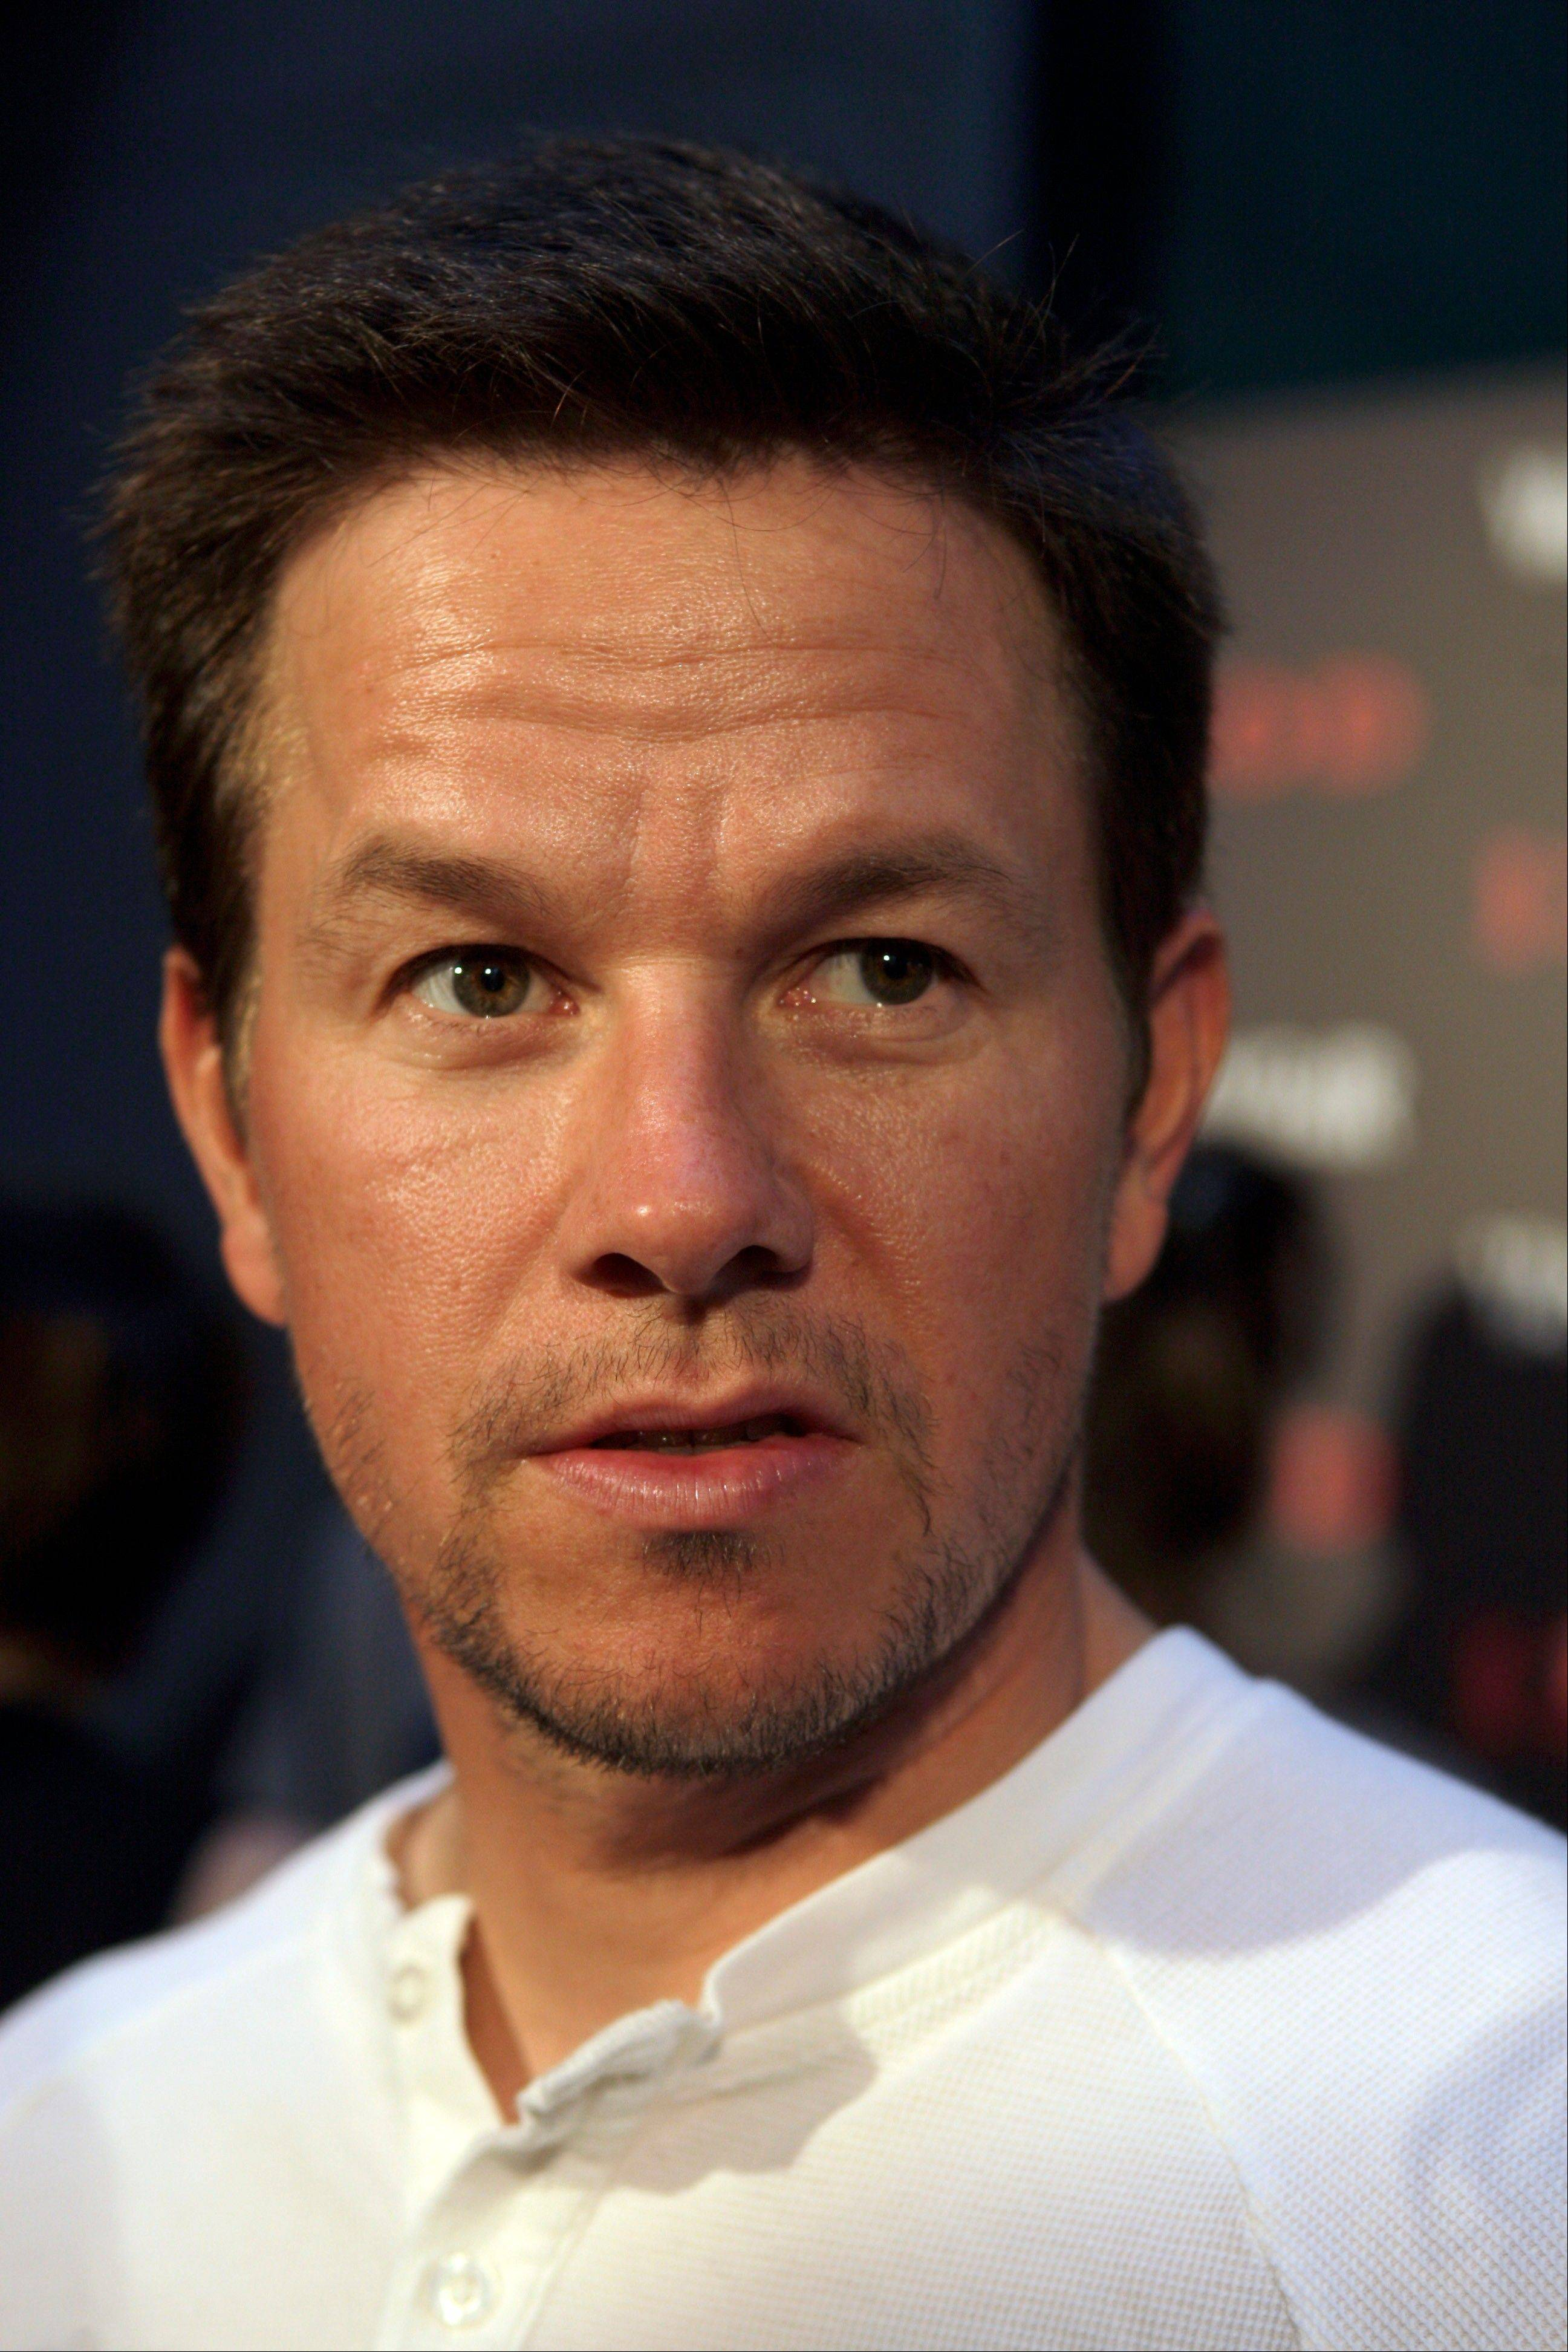 Mark Wahlberg is now a high school graduate -- 25 years after dropping out of a Boston high school. The 42-year-old actor-producer finished his diploma requirements after taking classes online.